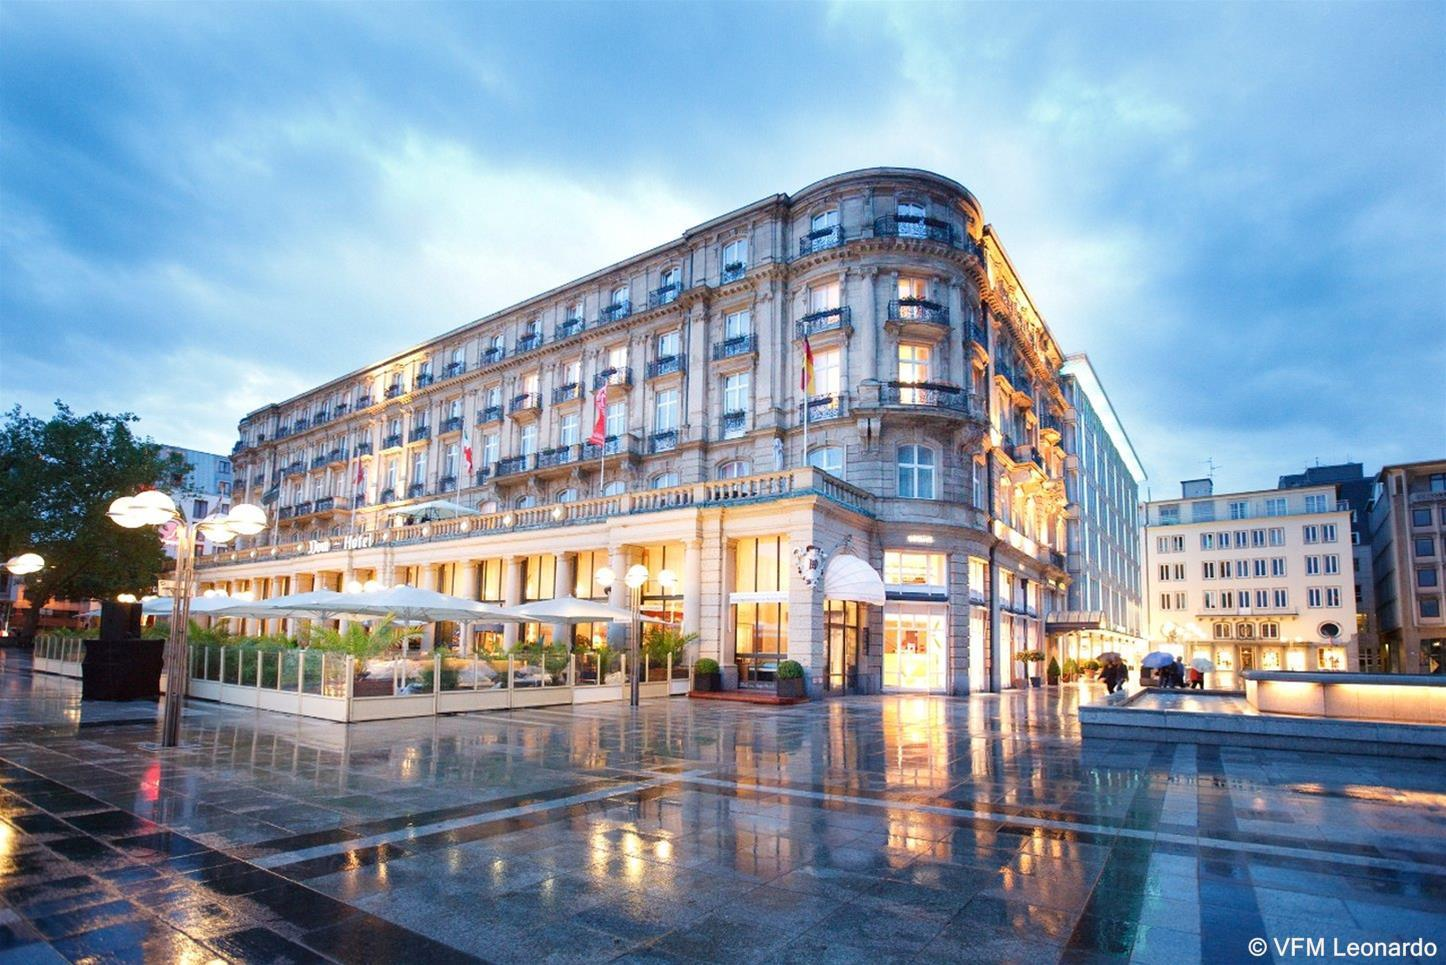 Le Meridien Dom Hotel Cologne